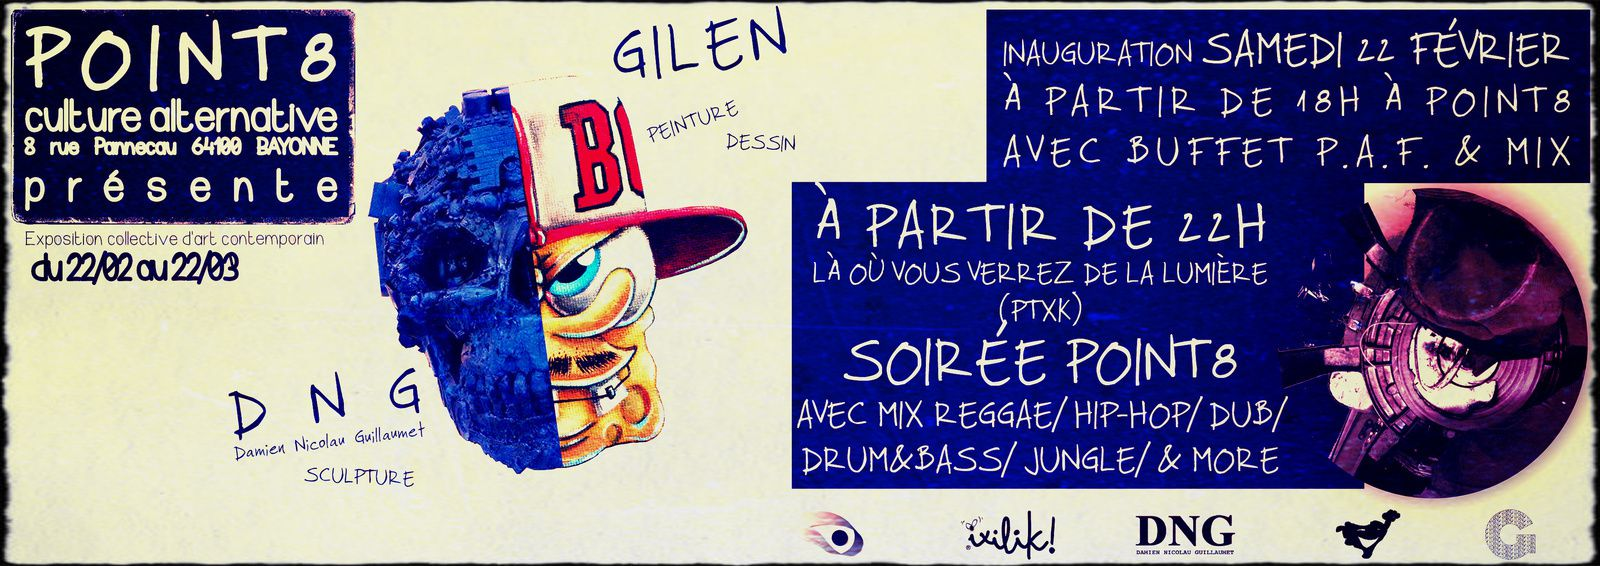 EXPOSITION GILEN VS D.N.G. + SOIREE POINT8